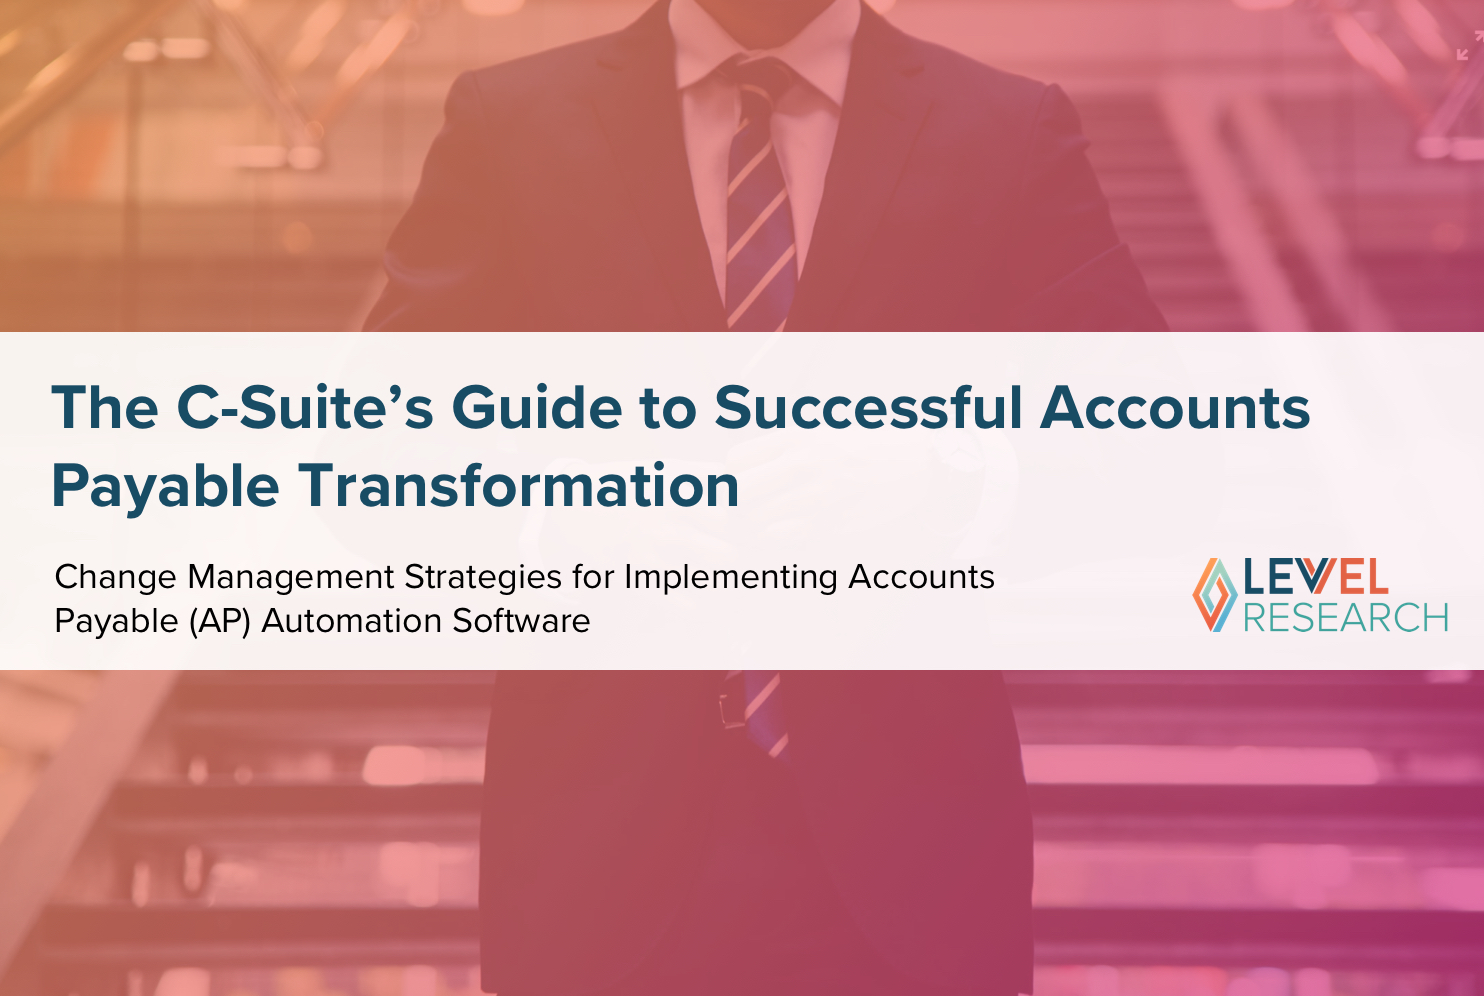 The C-Suite's Guide to Successful Accounts Payable Transformation